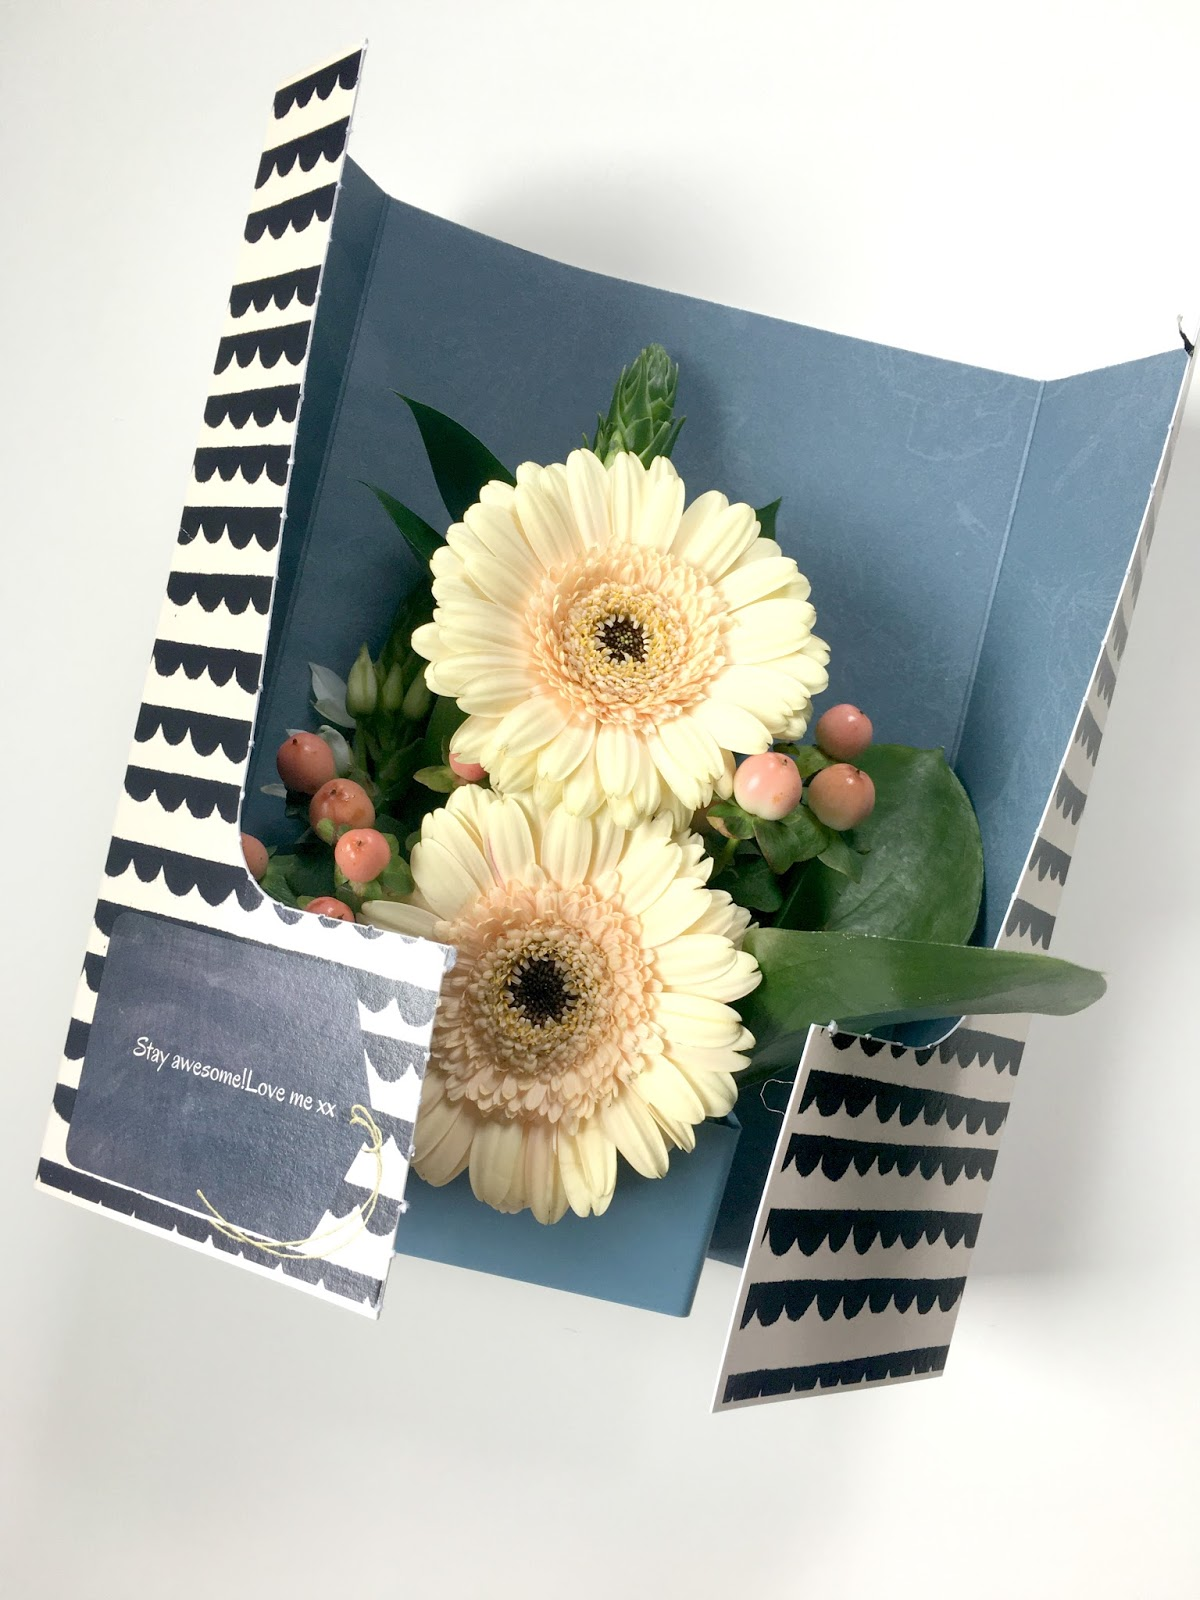 Sweet allure Lisa Stickley Flower Card Review.